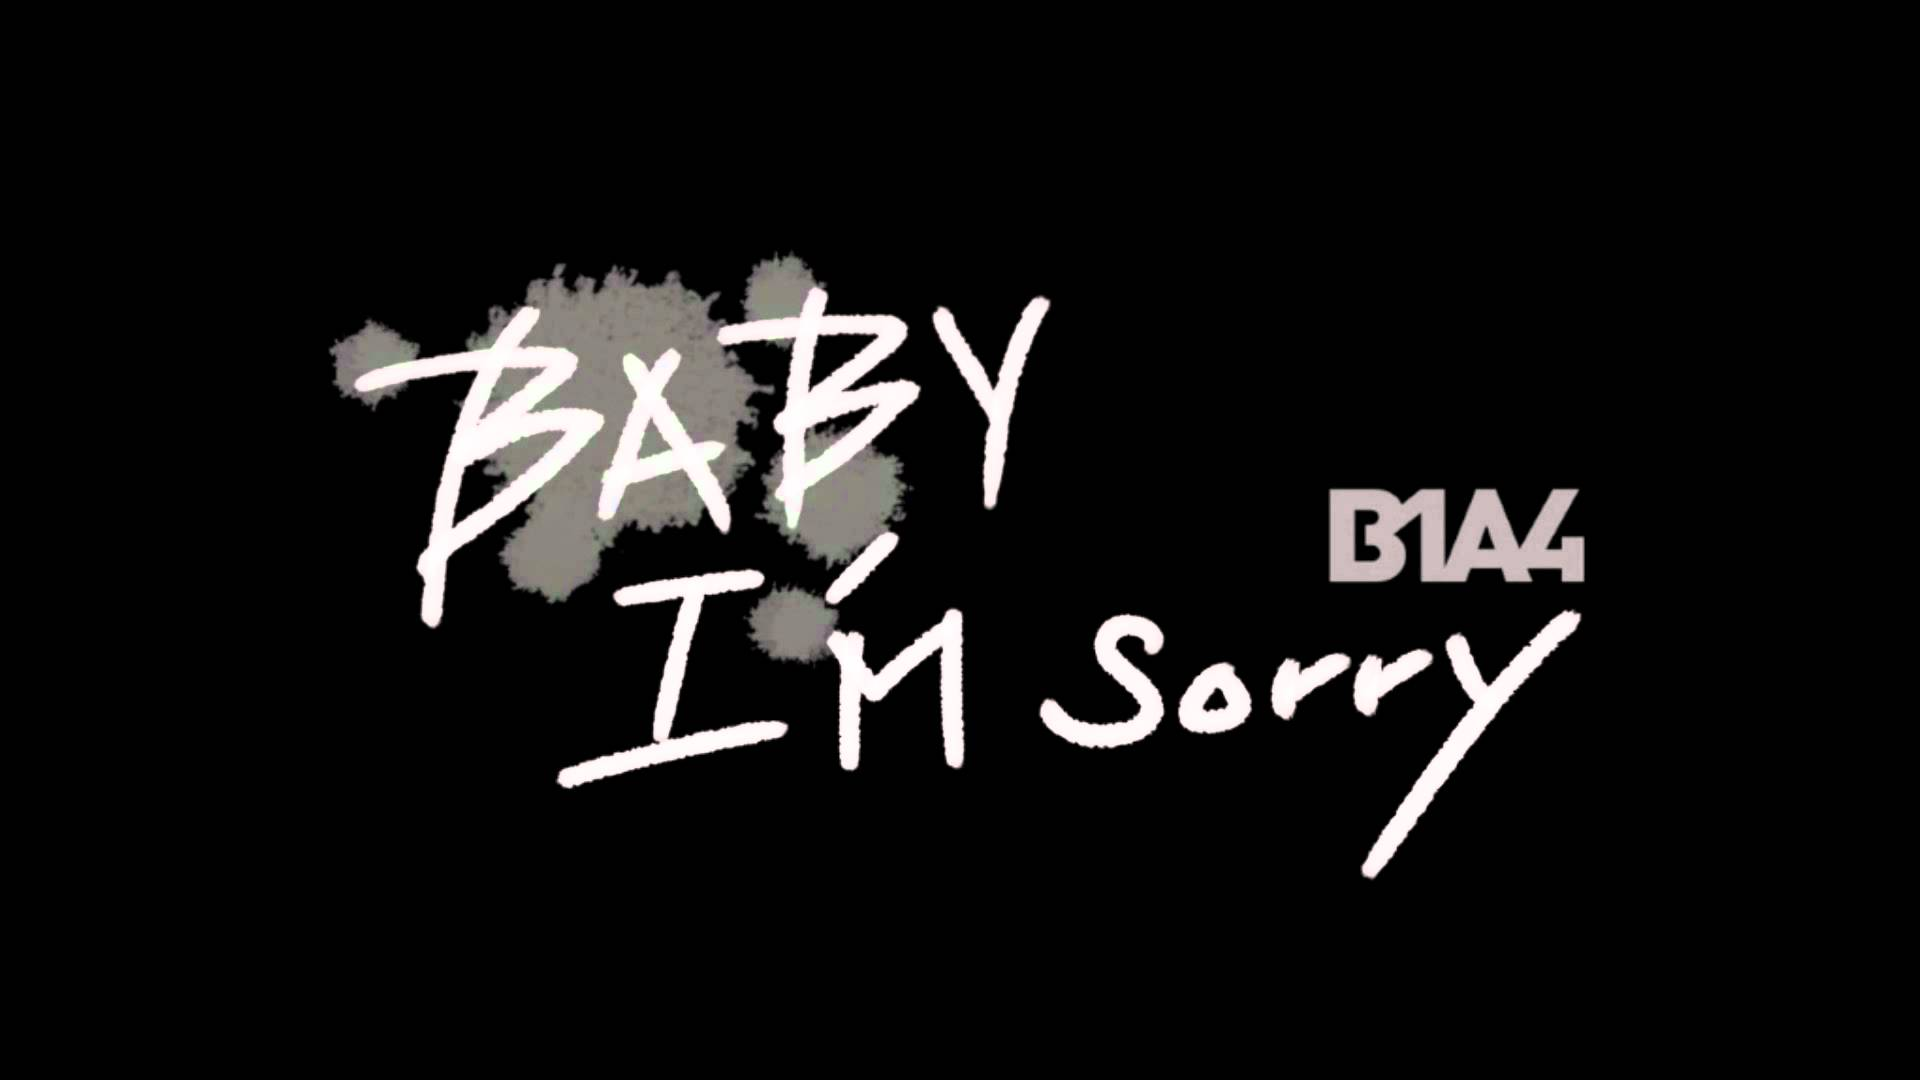 B1A4 - Baby I'm Sorry (English Cover/Lyrics In Description) -